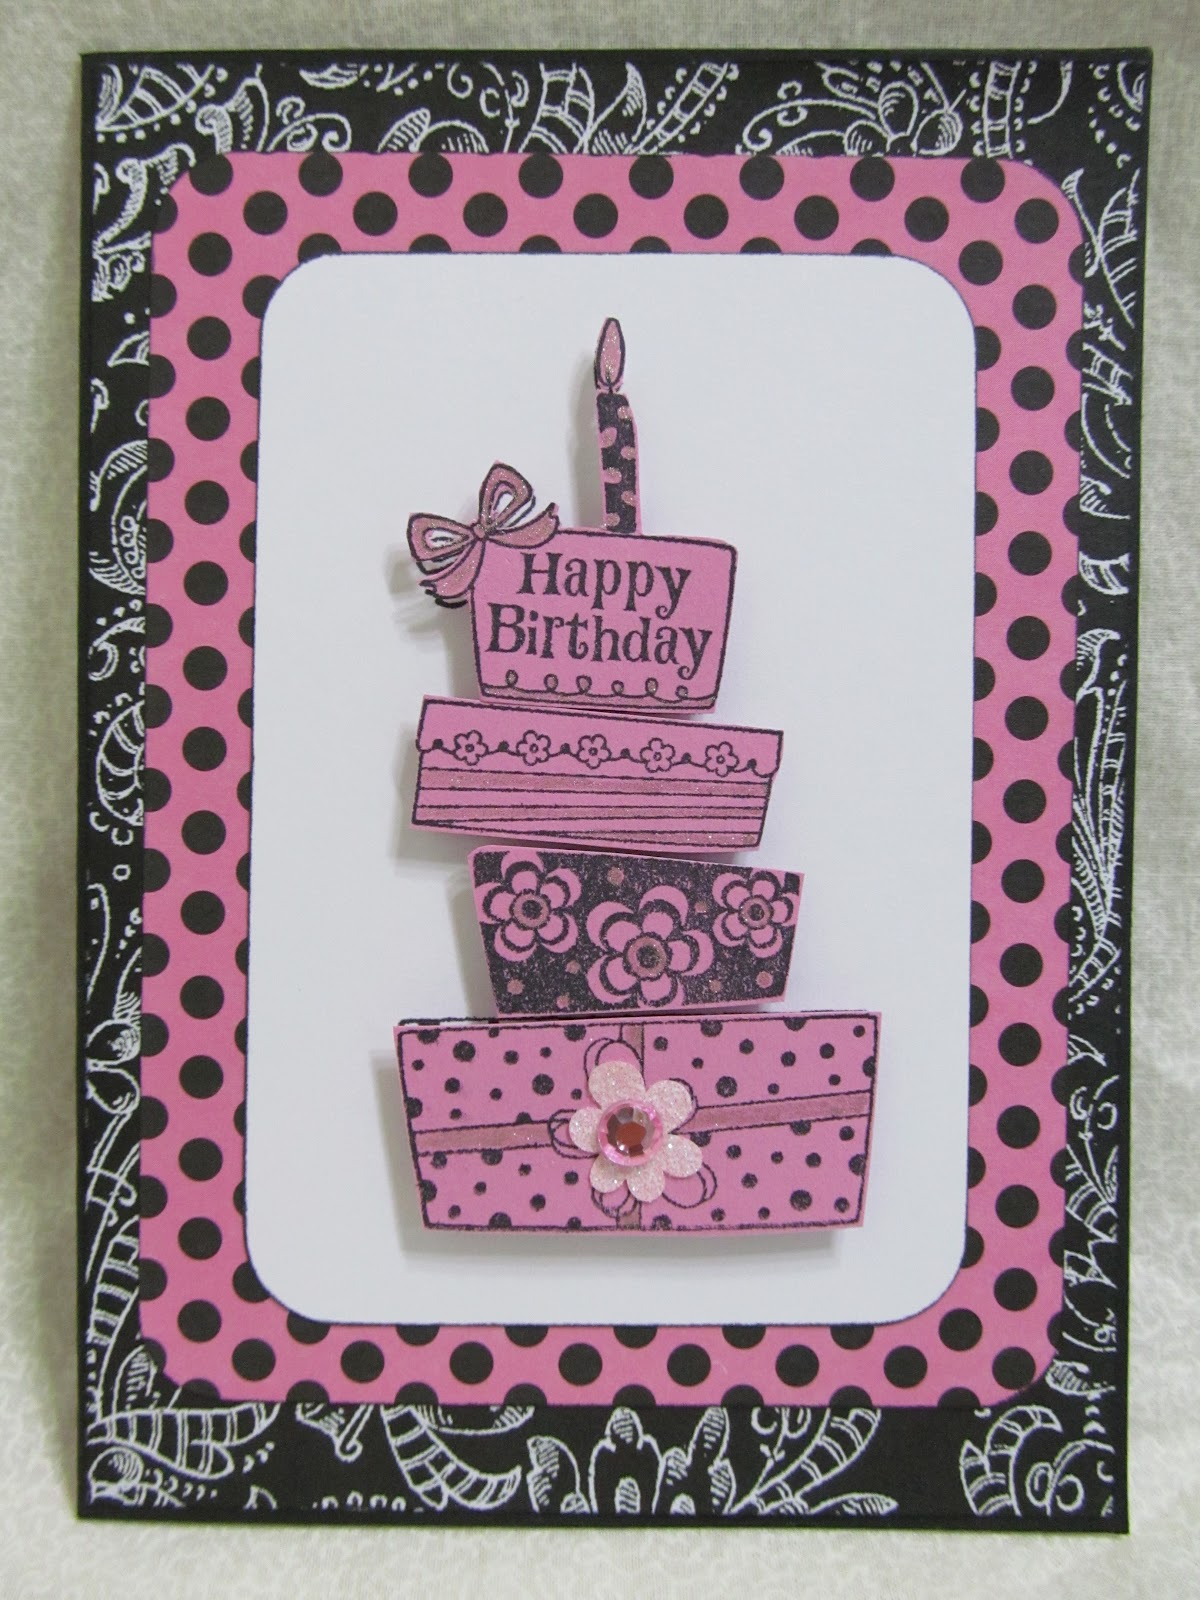 Birthday Cake Images Card : Savvy Handmade Cards: Happy Birthday Pink Cake Card